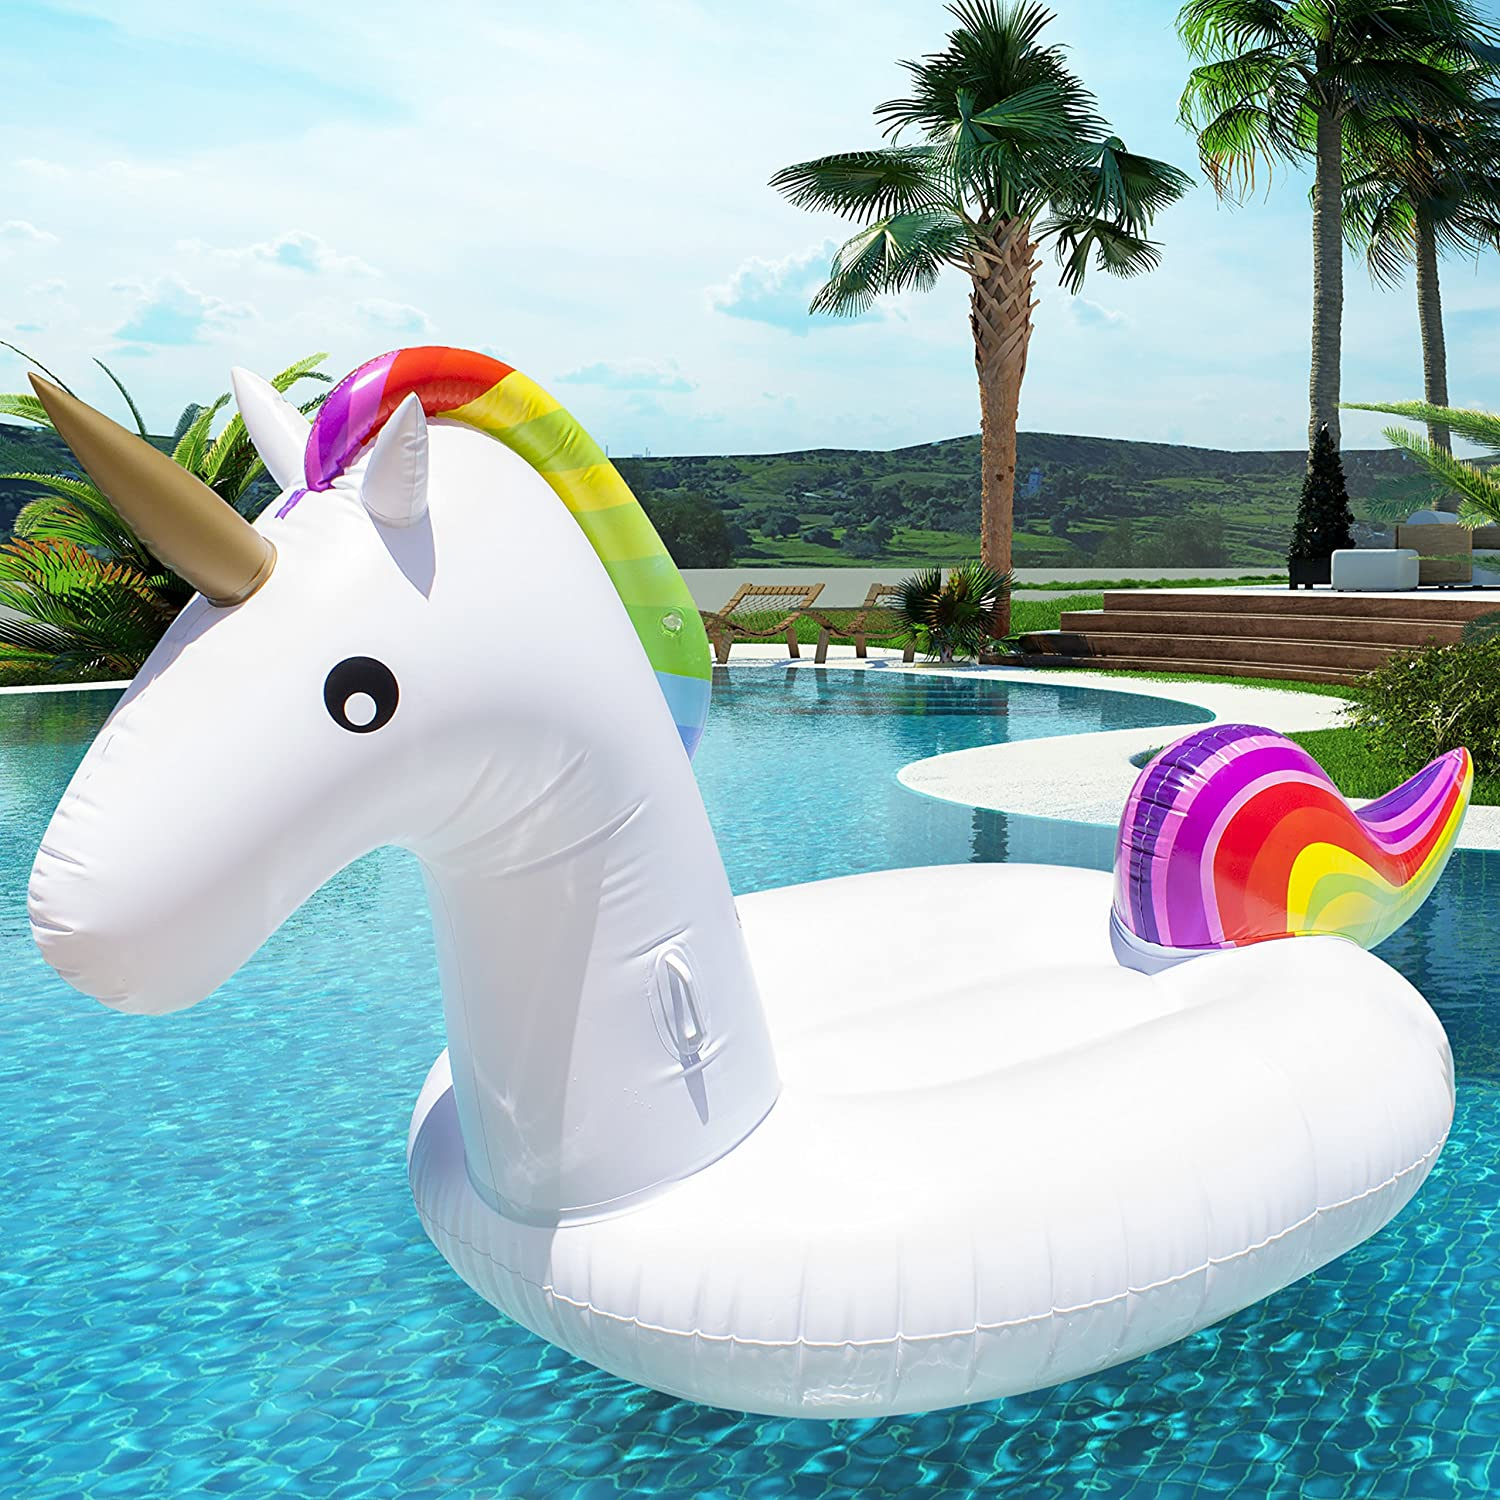 Pacago Giant Inflatable Flamingo Pool Float Outdoor Swimming